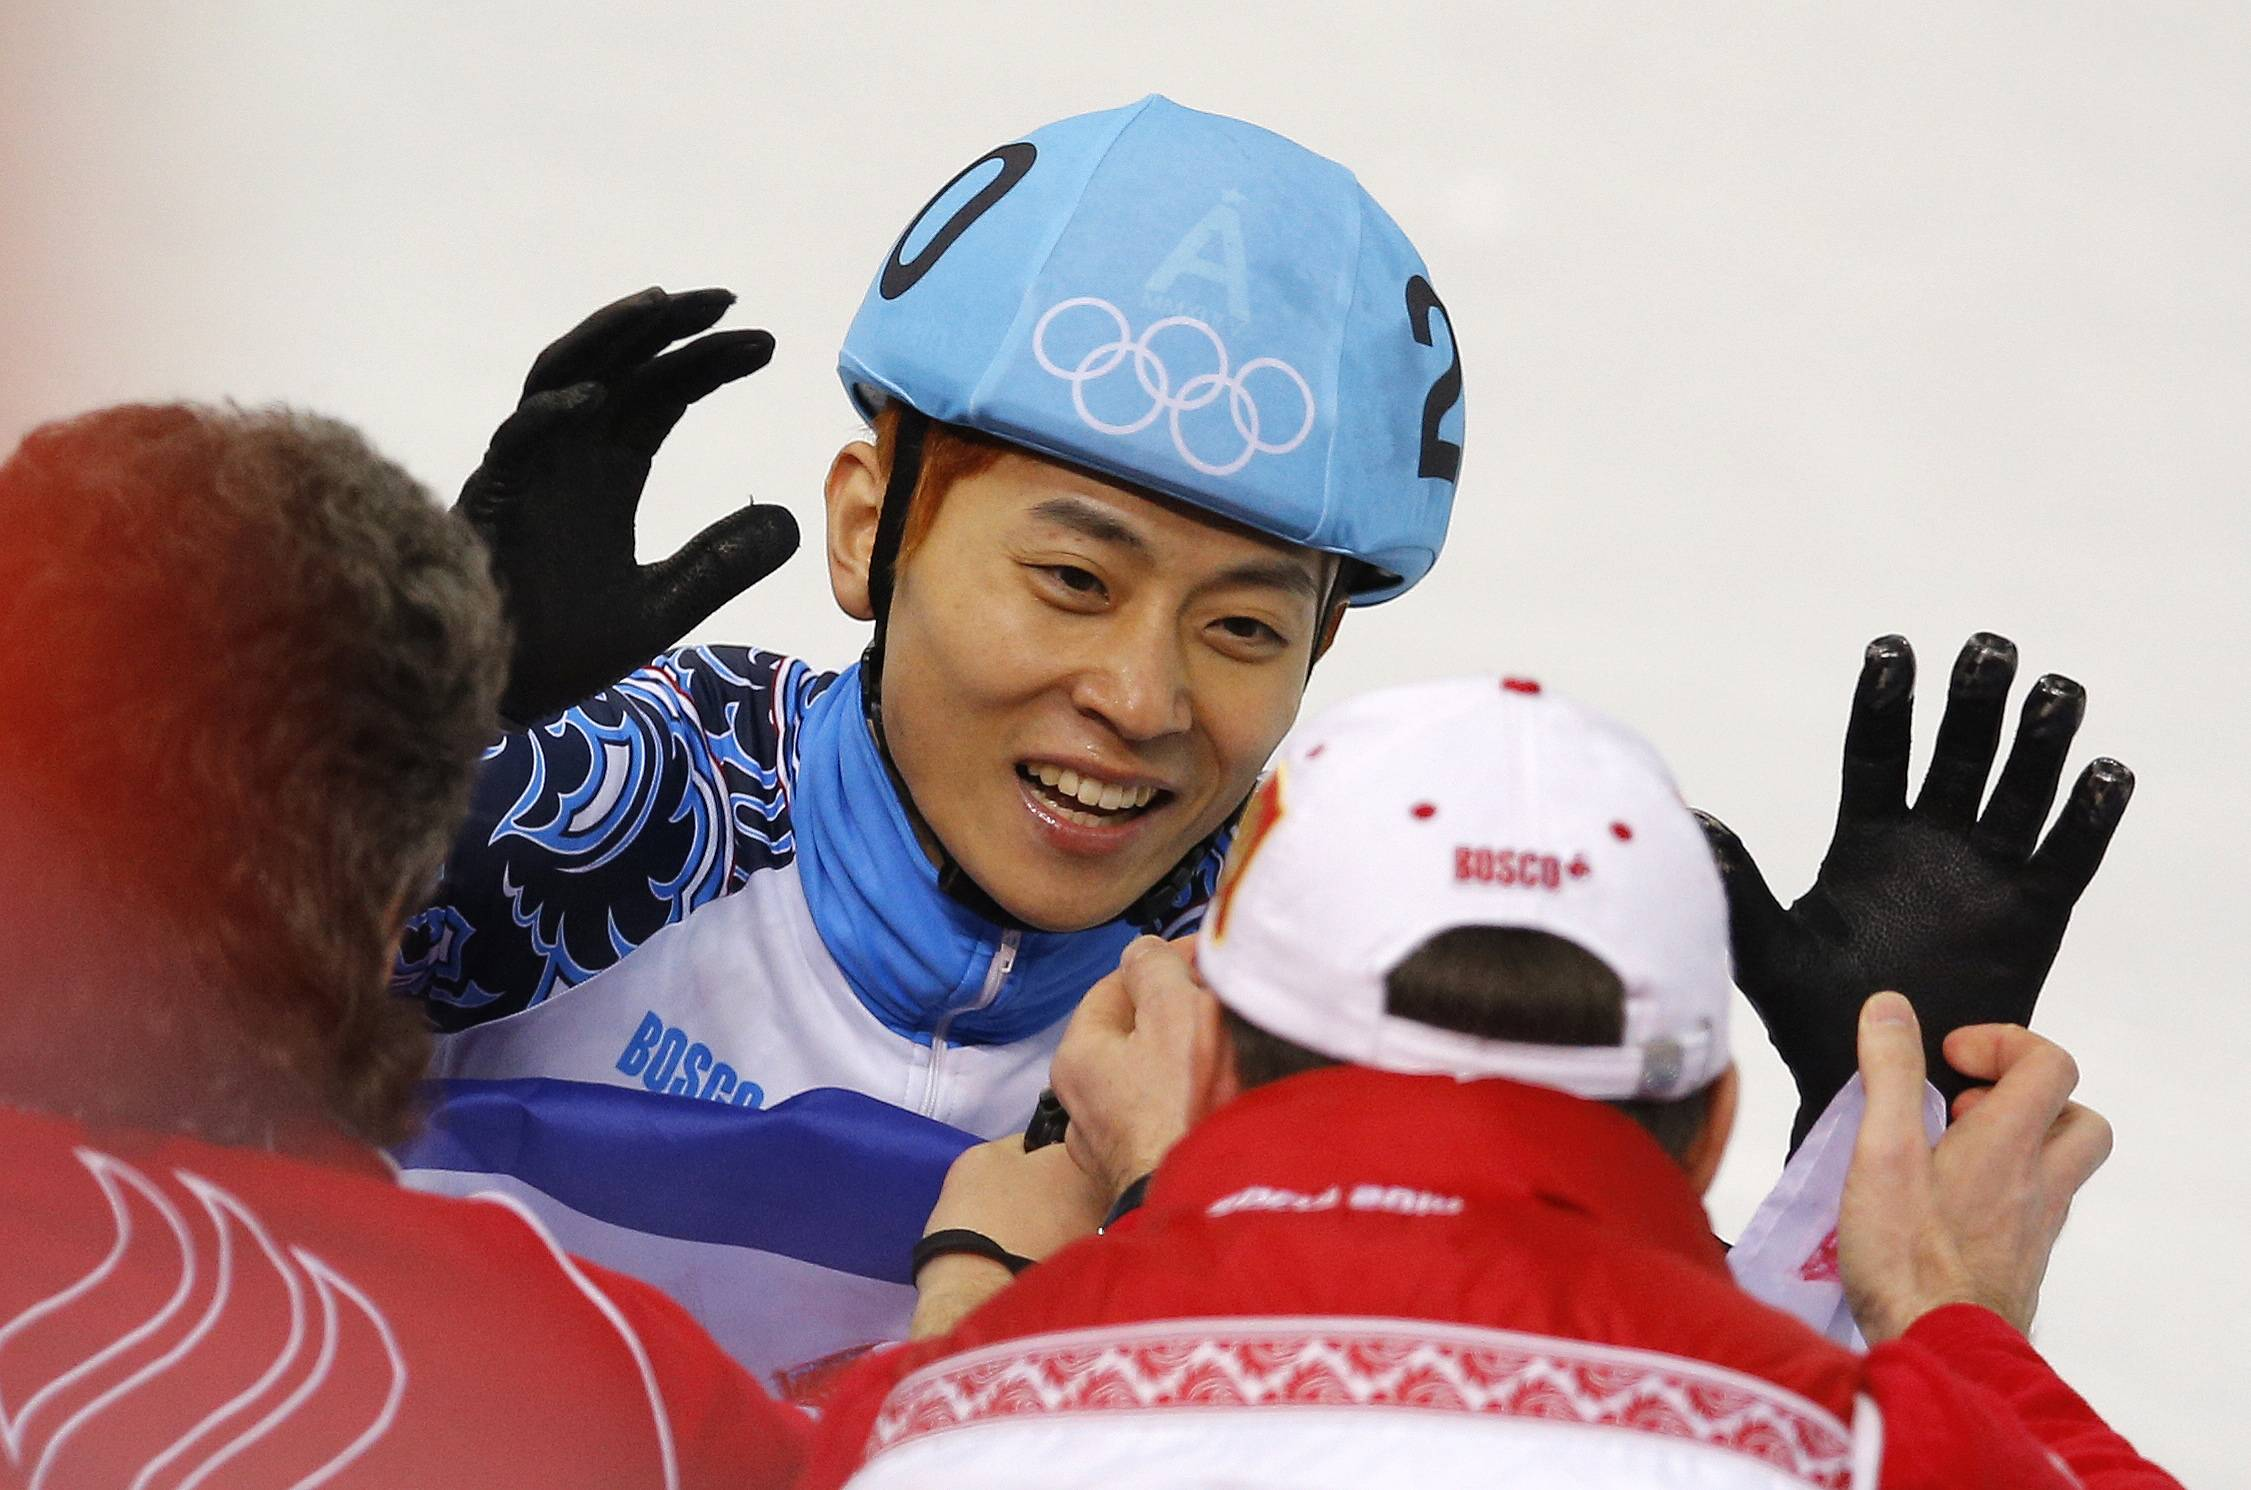 Victor An of Russia, center, celebrates with team members after he finished first in the men's 500m short track speedskating final.